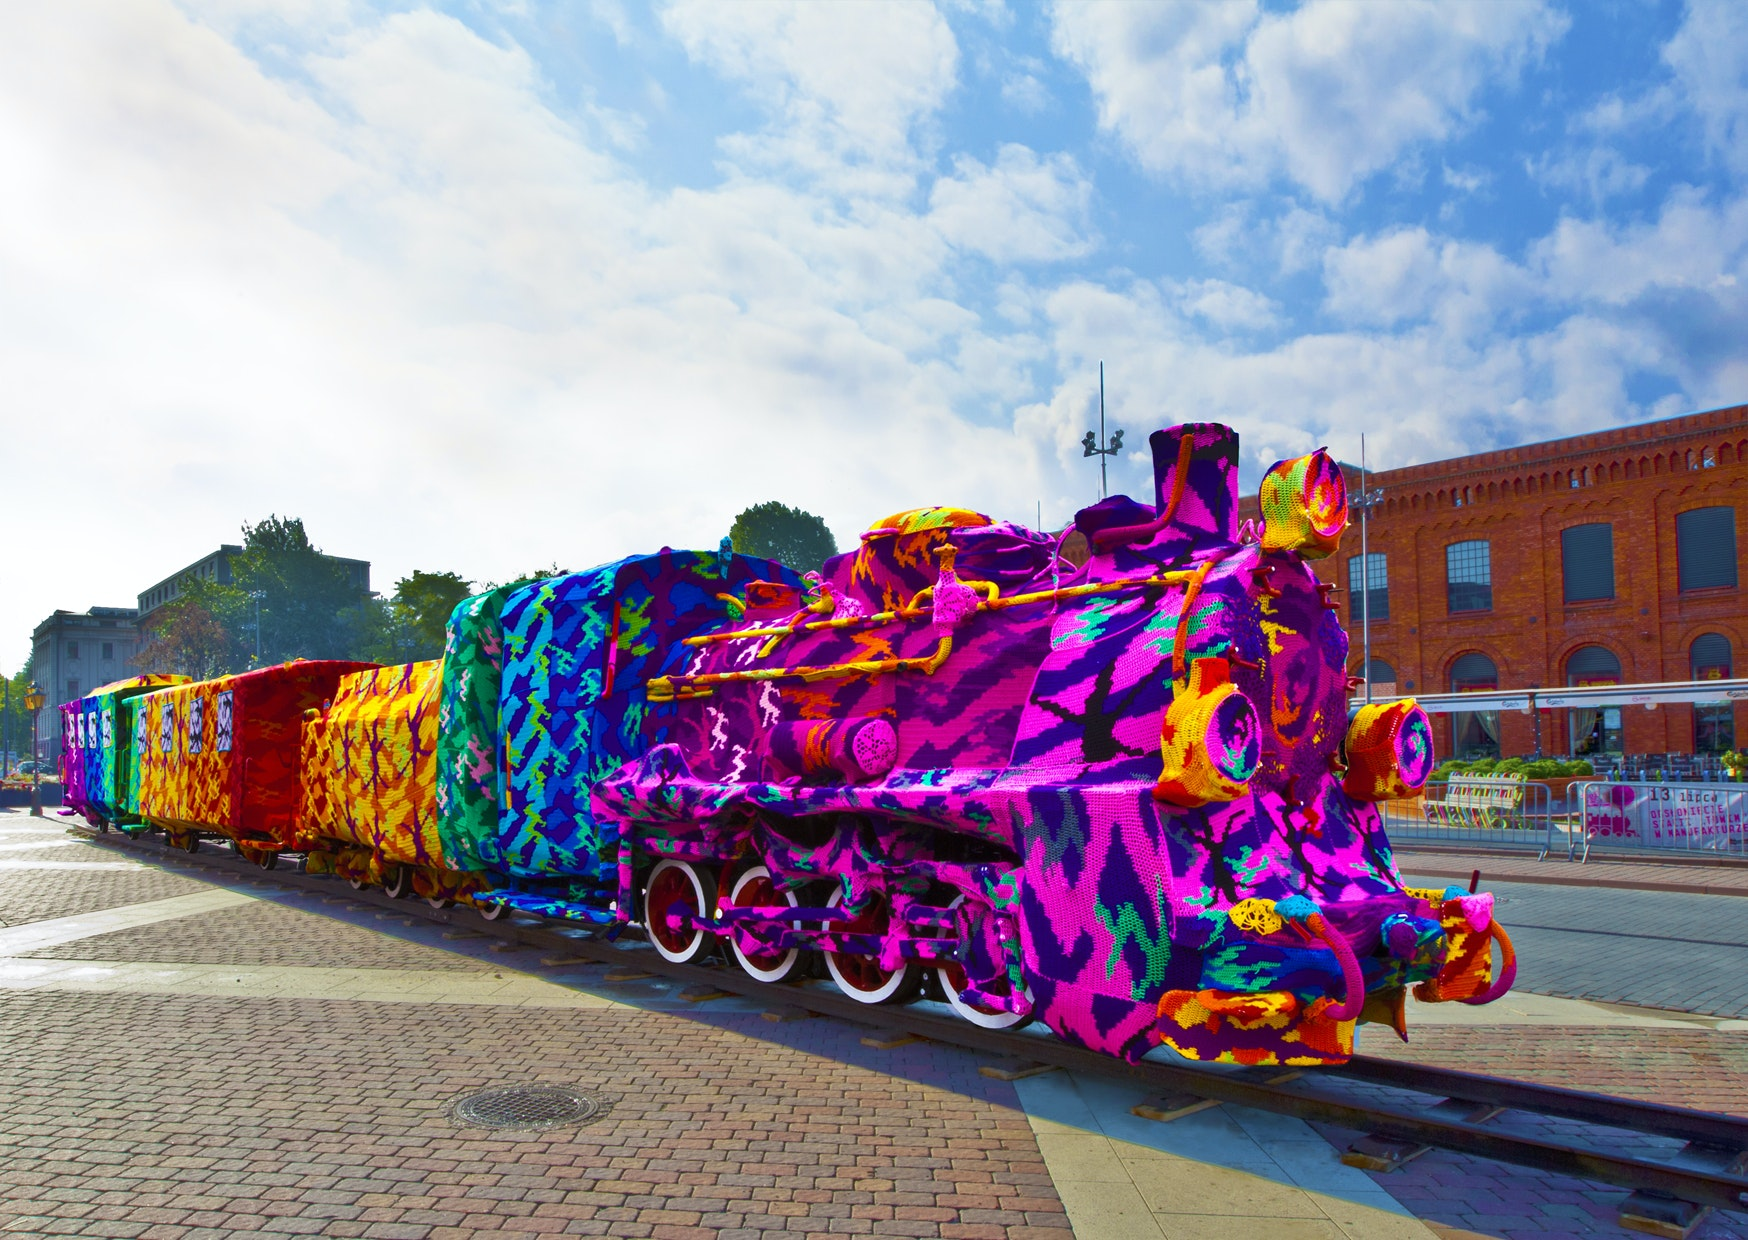 """<p>Cindy Michael/Harps and Thistles wants commemorate Sojourner Truth's Akron speech """"Ain't I A Woman?"""" in a large-scale, public crochet installation as part of a national project by Polish-American artist Olek. Photo Credit: Olek.</p><p><br></p>"""